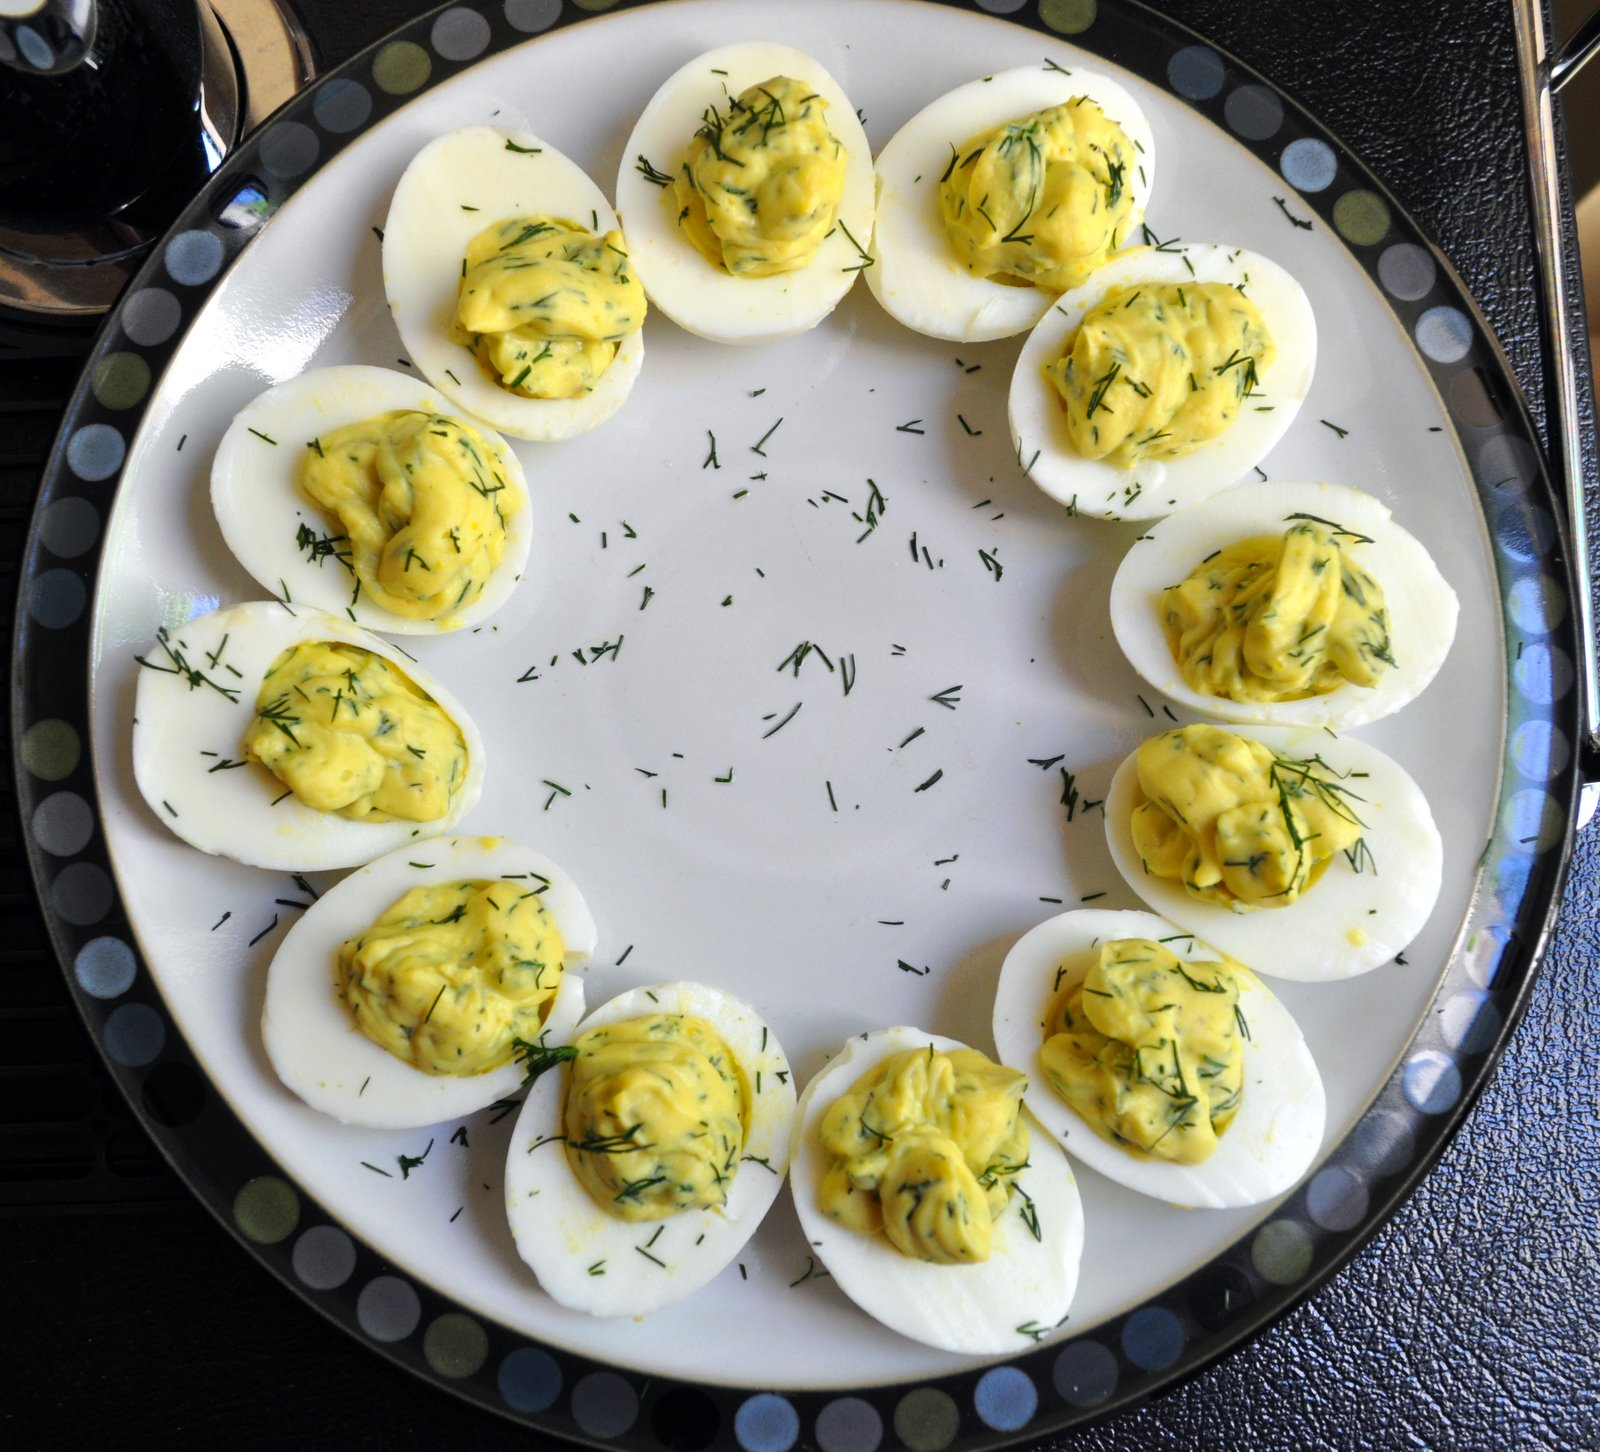 ... the egg yolk mixture into the halved eggs serve garnished with dill